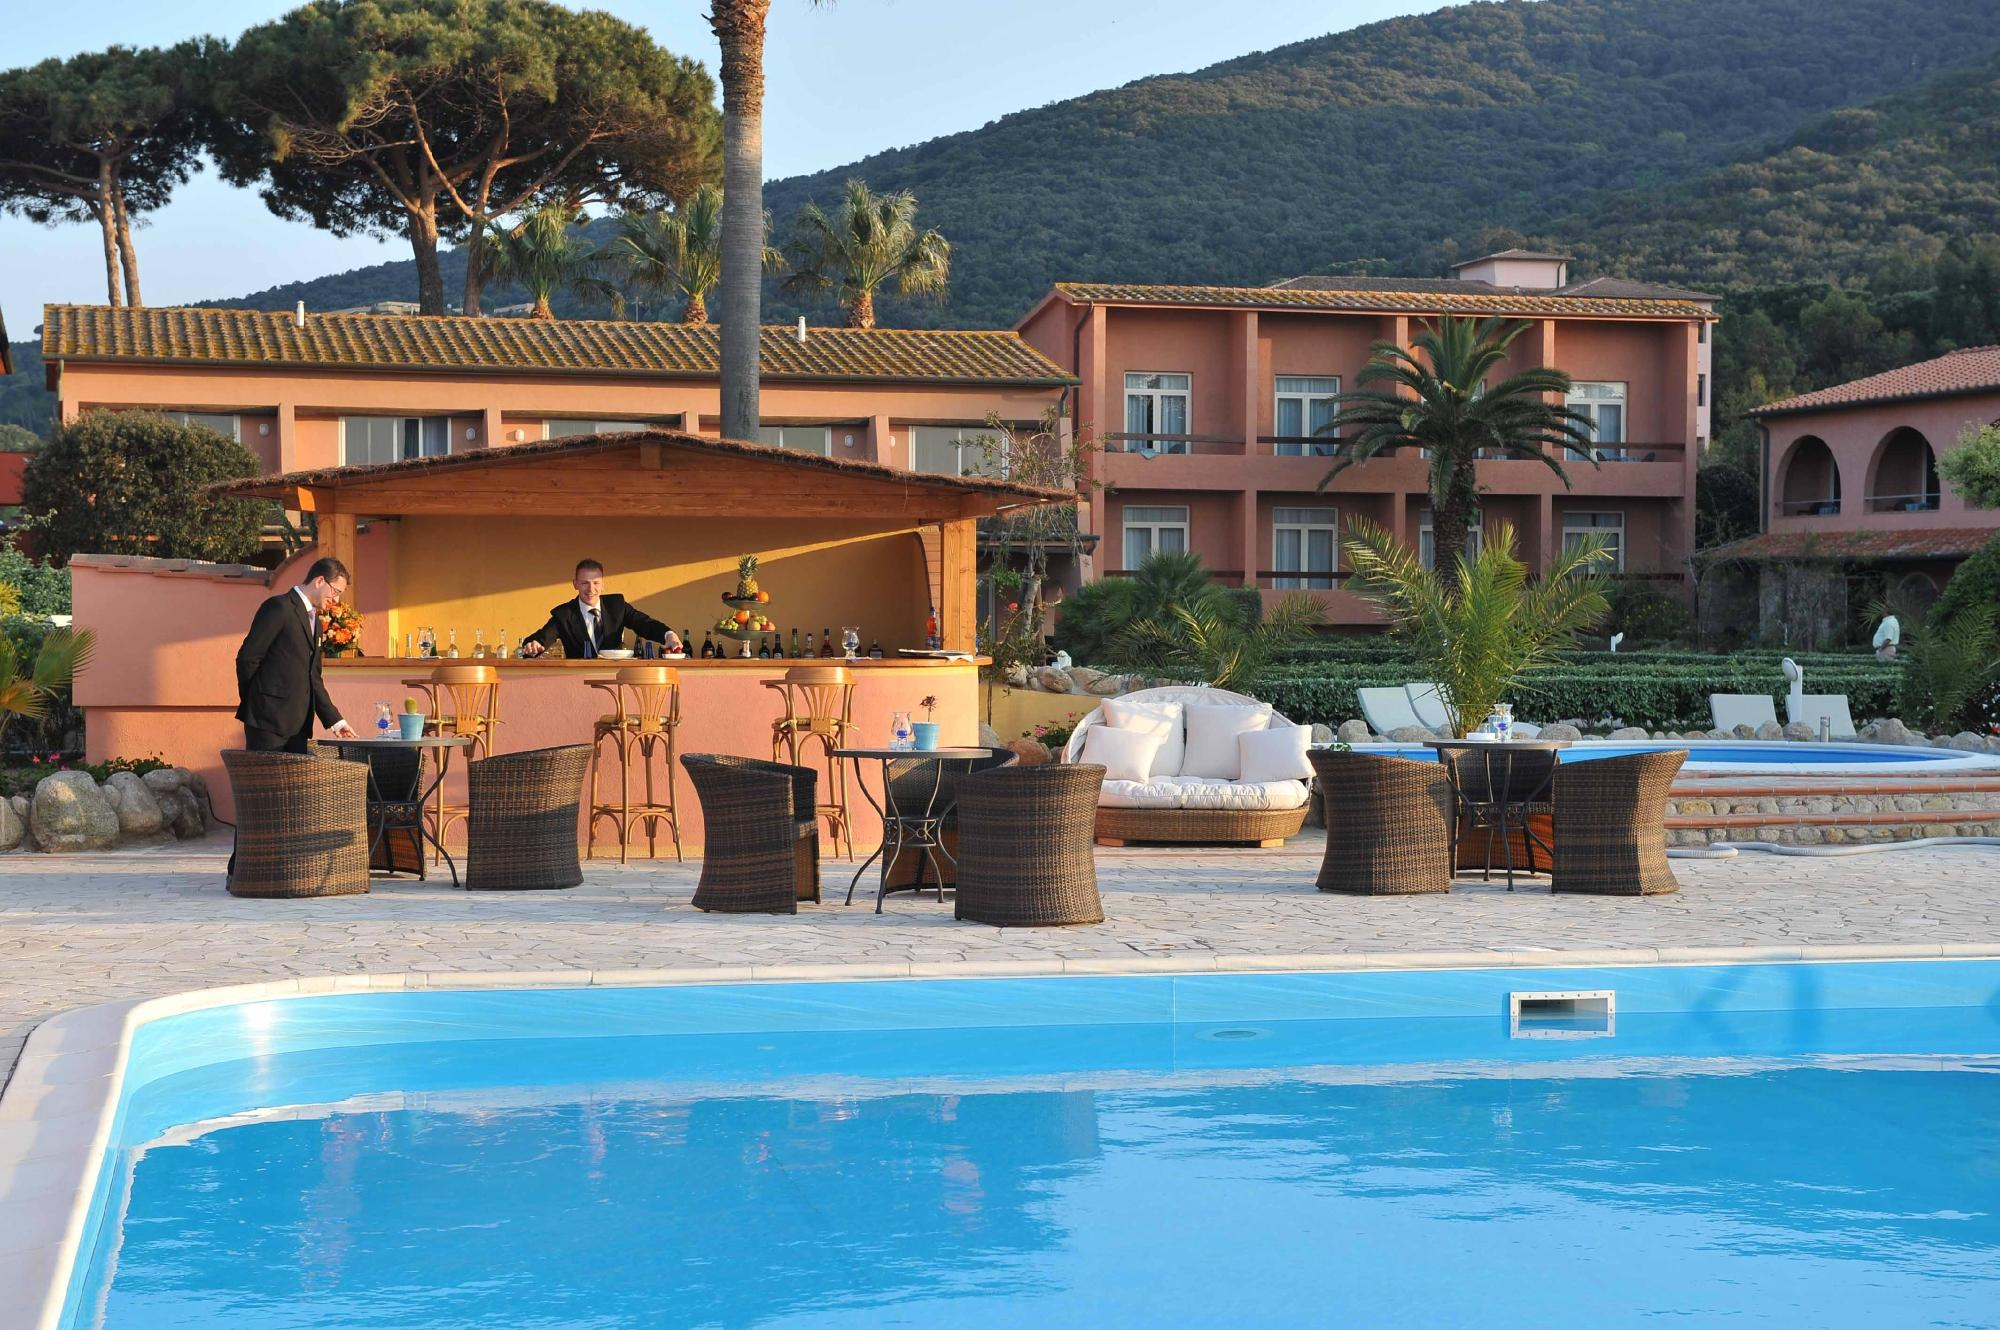 Hotel Del Golfo Exterior and Swimming Pool